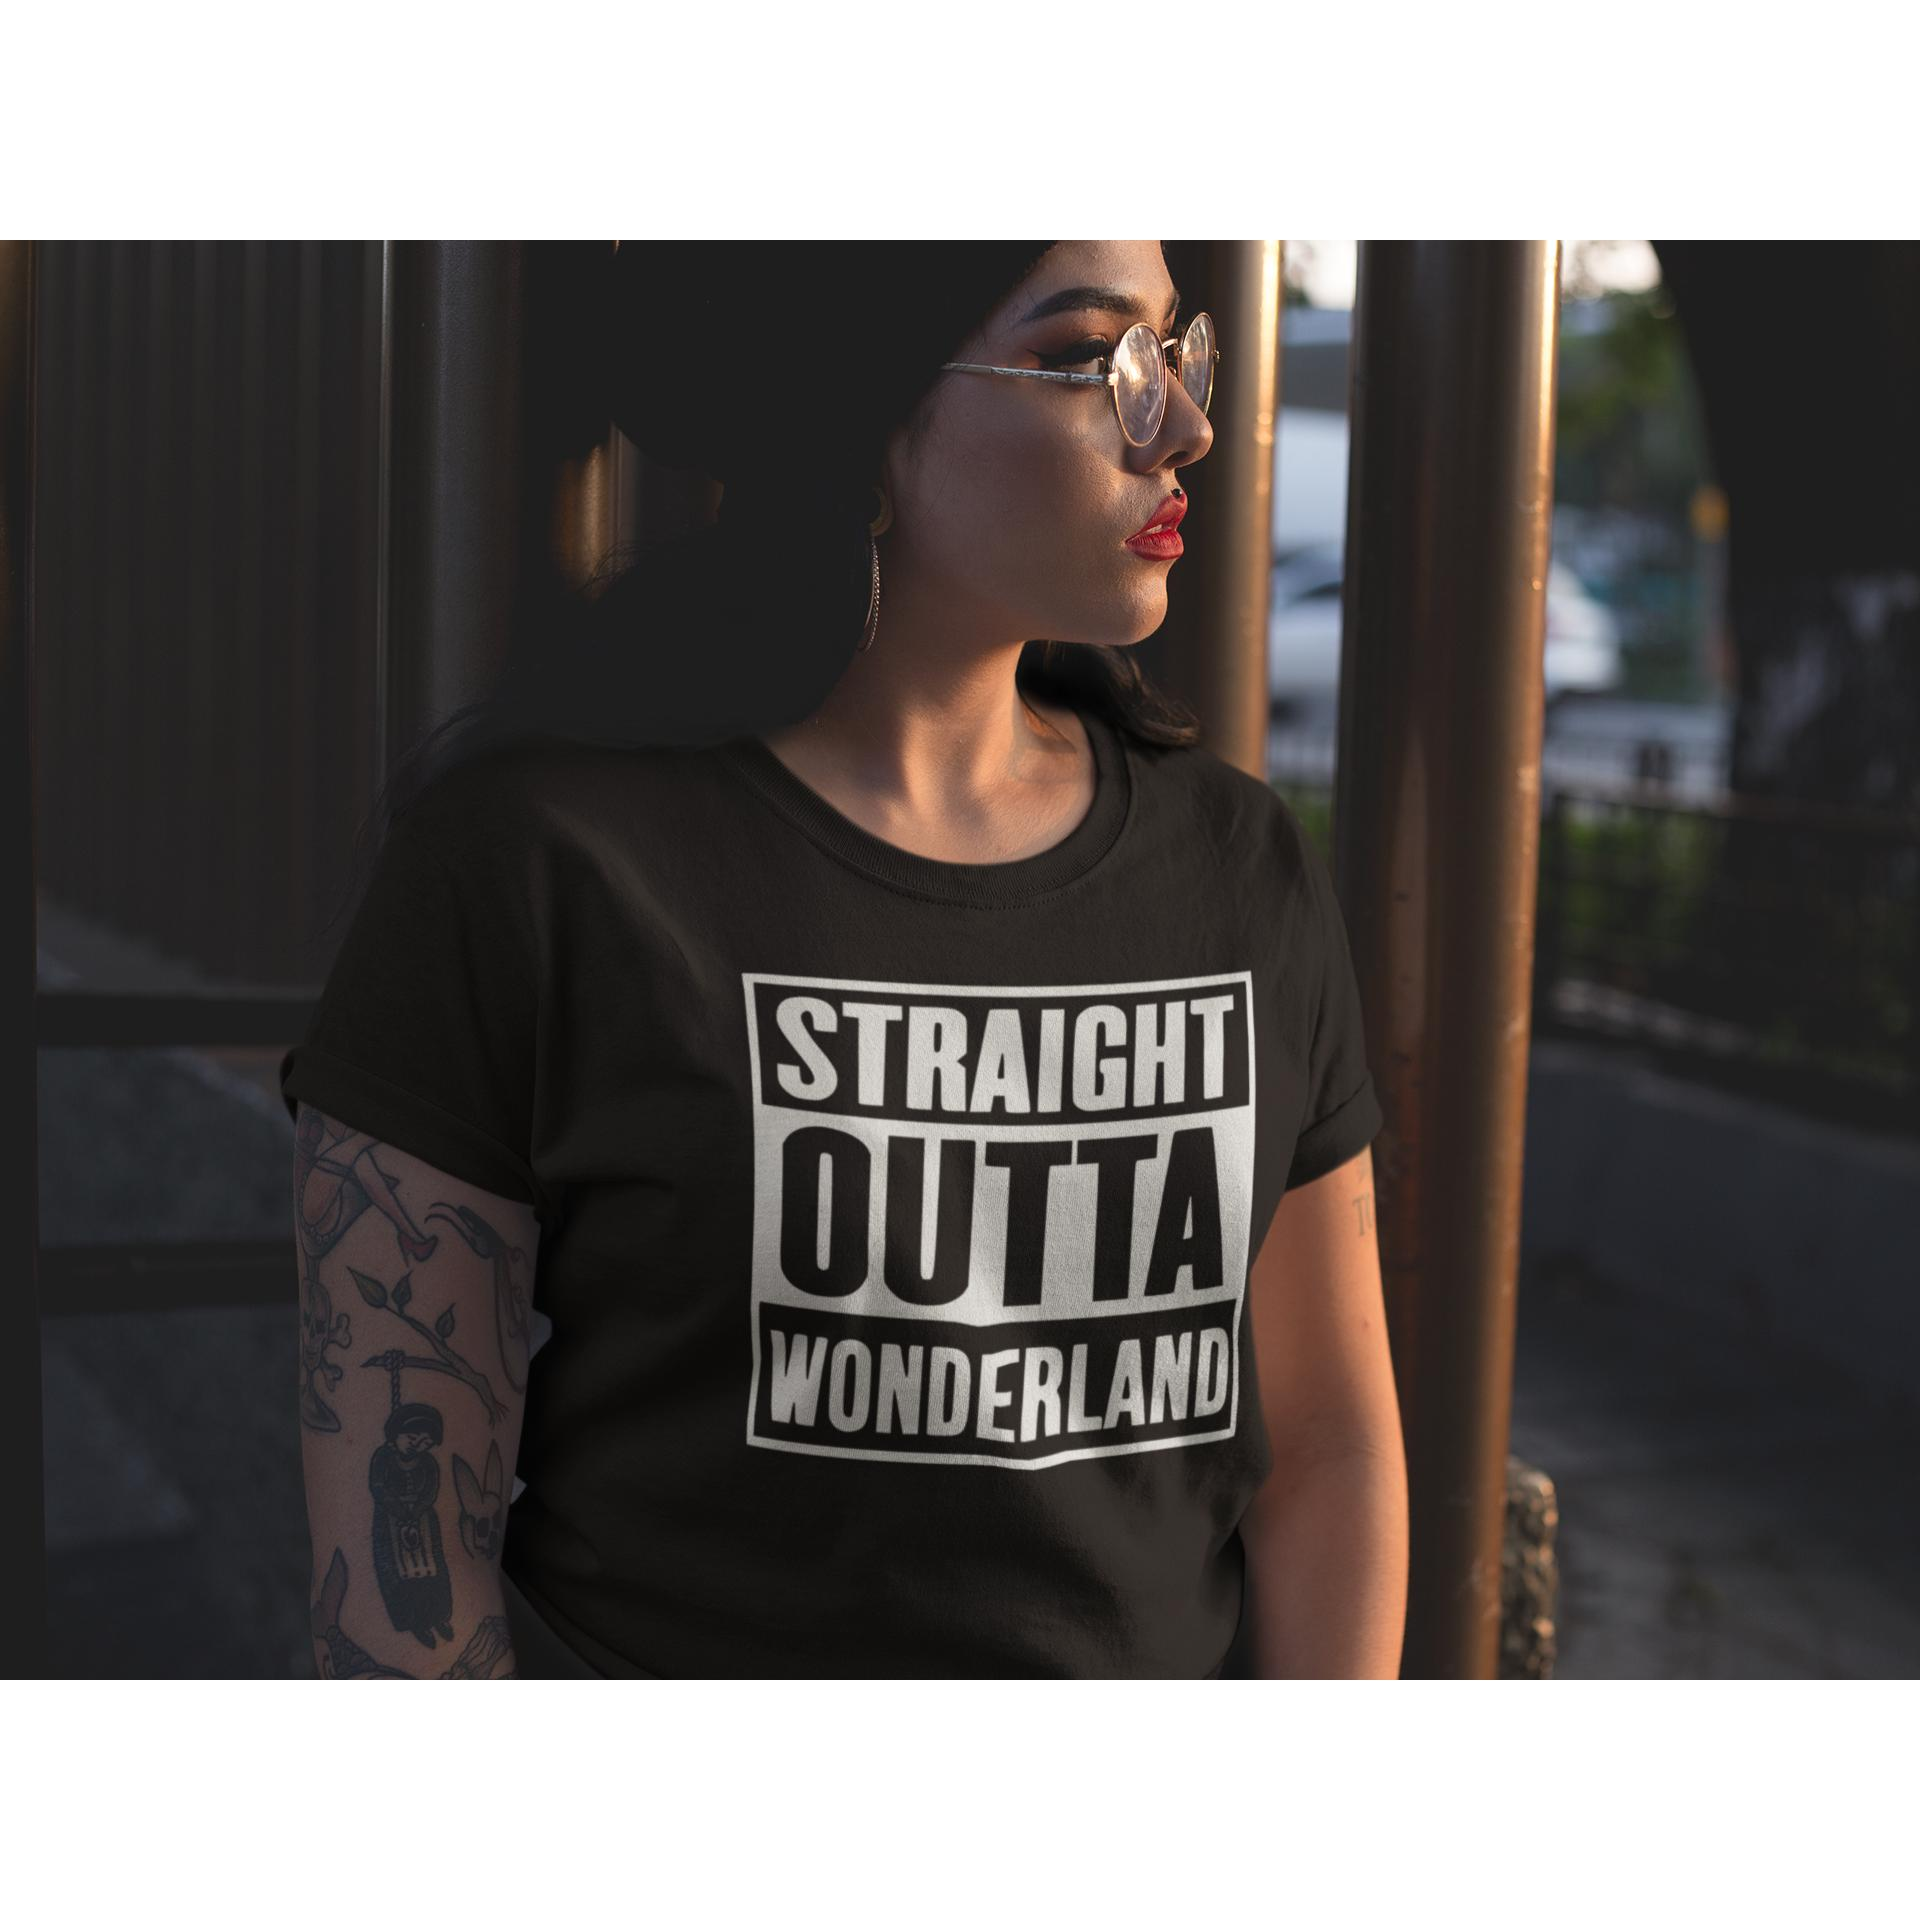 STRAIGHT OUTTA WONDERLAND - Rave On!® - Damen RollUp Shirt Women Rollup Shirt - Rave On!® der Club & Techno Szene Shop für Coole Junge Mode Streetwear Style & Fashion Outfits + Sexy Festival 420 Stuff